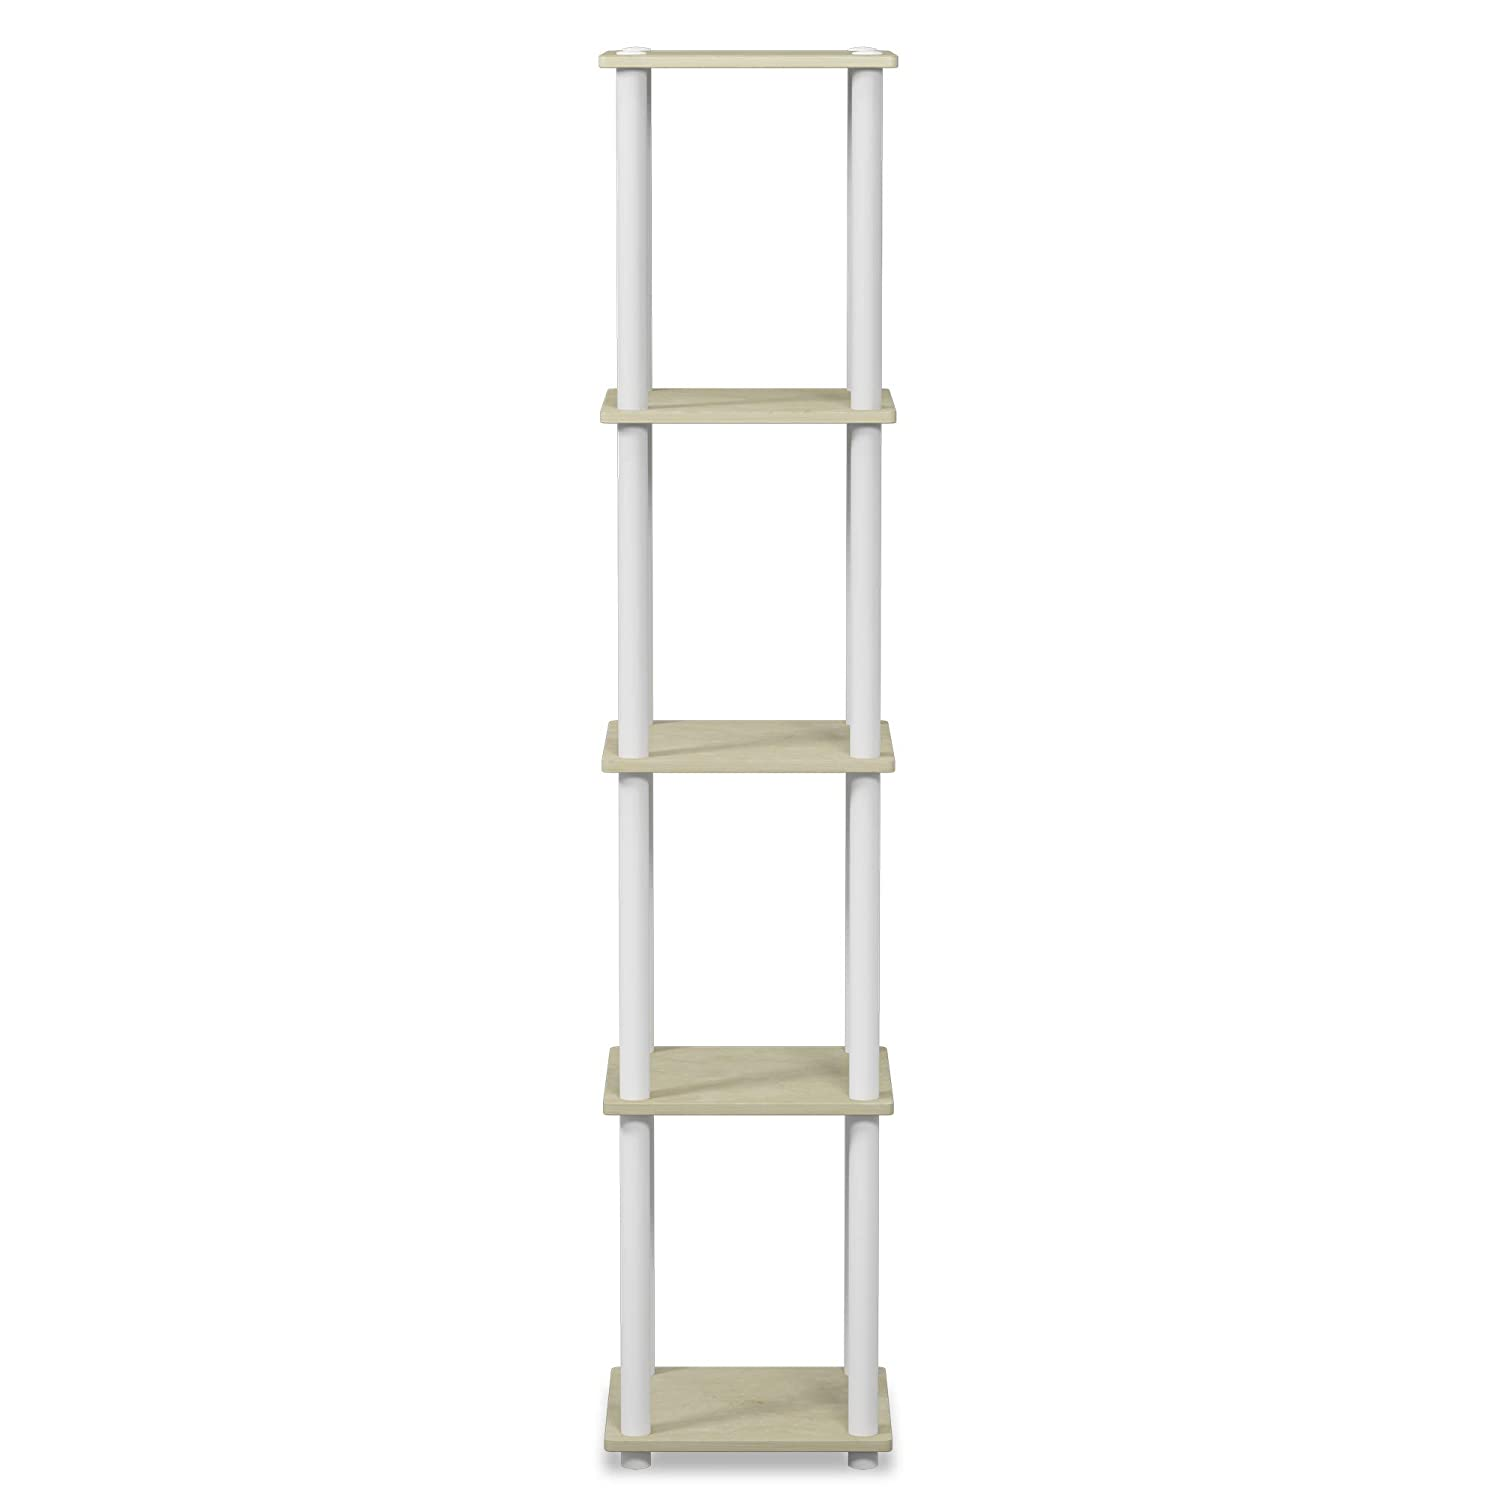 FURINNO Turn-N-Tube 5-Tier Corner Square Rack Display Shelf, Round, Cream Faux Marble White